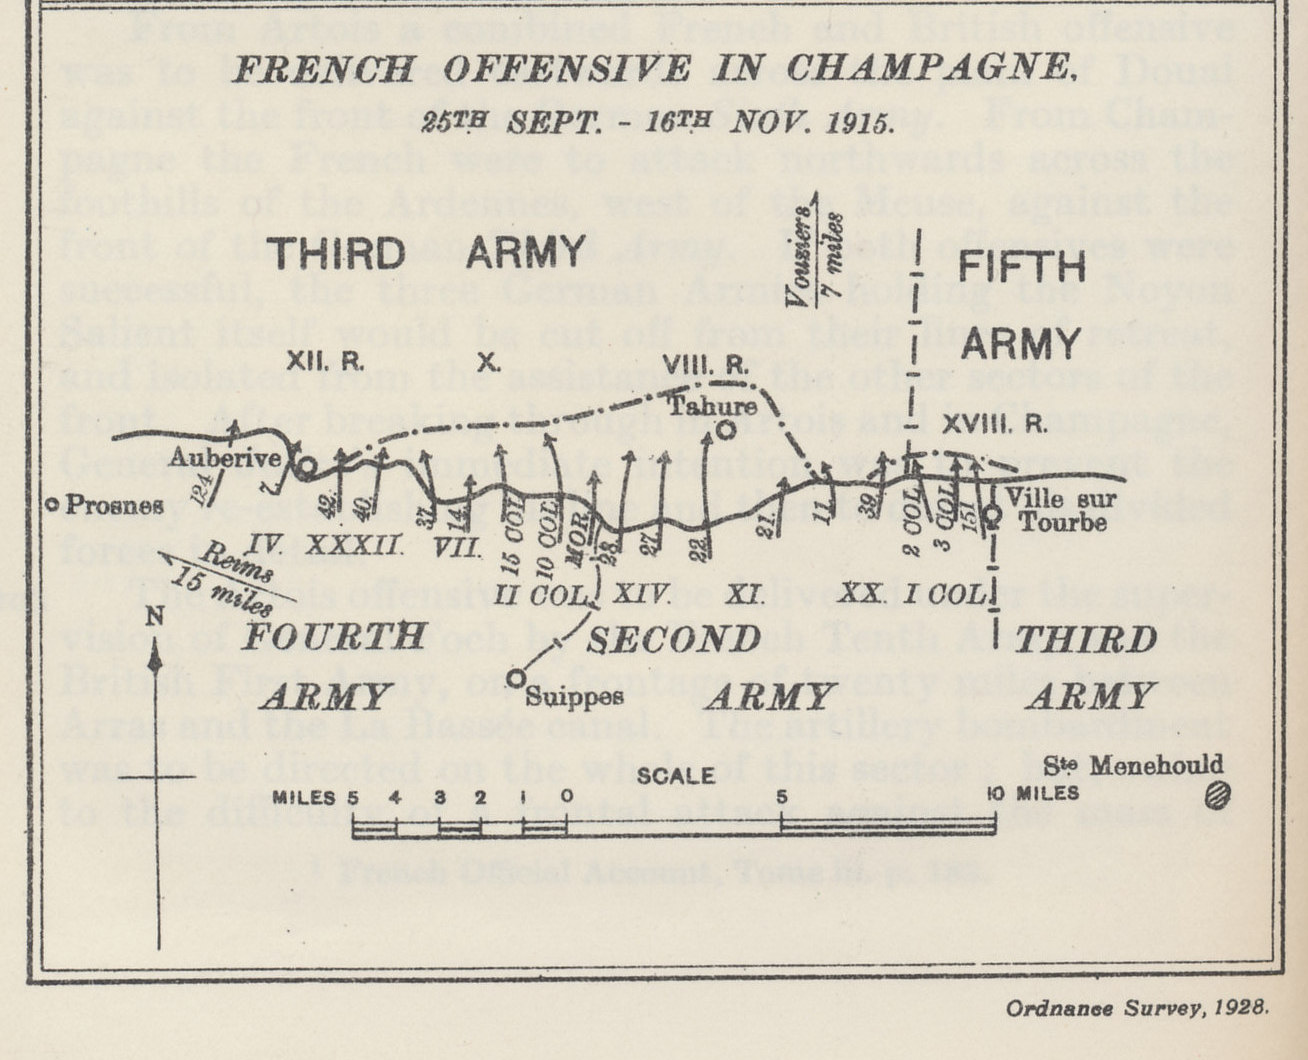 Map of the 'French Offensive in Champagne', the Second Battle of Champagne, and part of the Allied offensive in the autumn of 1915. From 'Military Operations France and Belgium, 1915, Vol. II, Battles of Aubers Ridge, Festubert, and Loos' by Brigadier-General J.E. Edmonds & Captain G.C. Wynne.